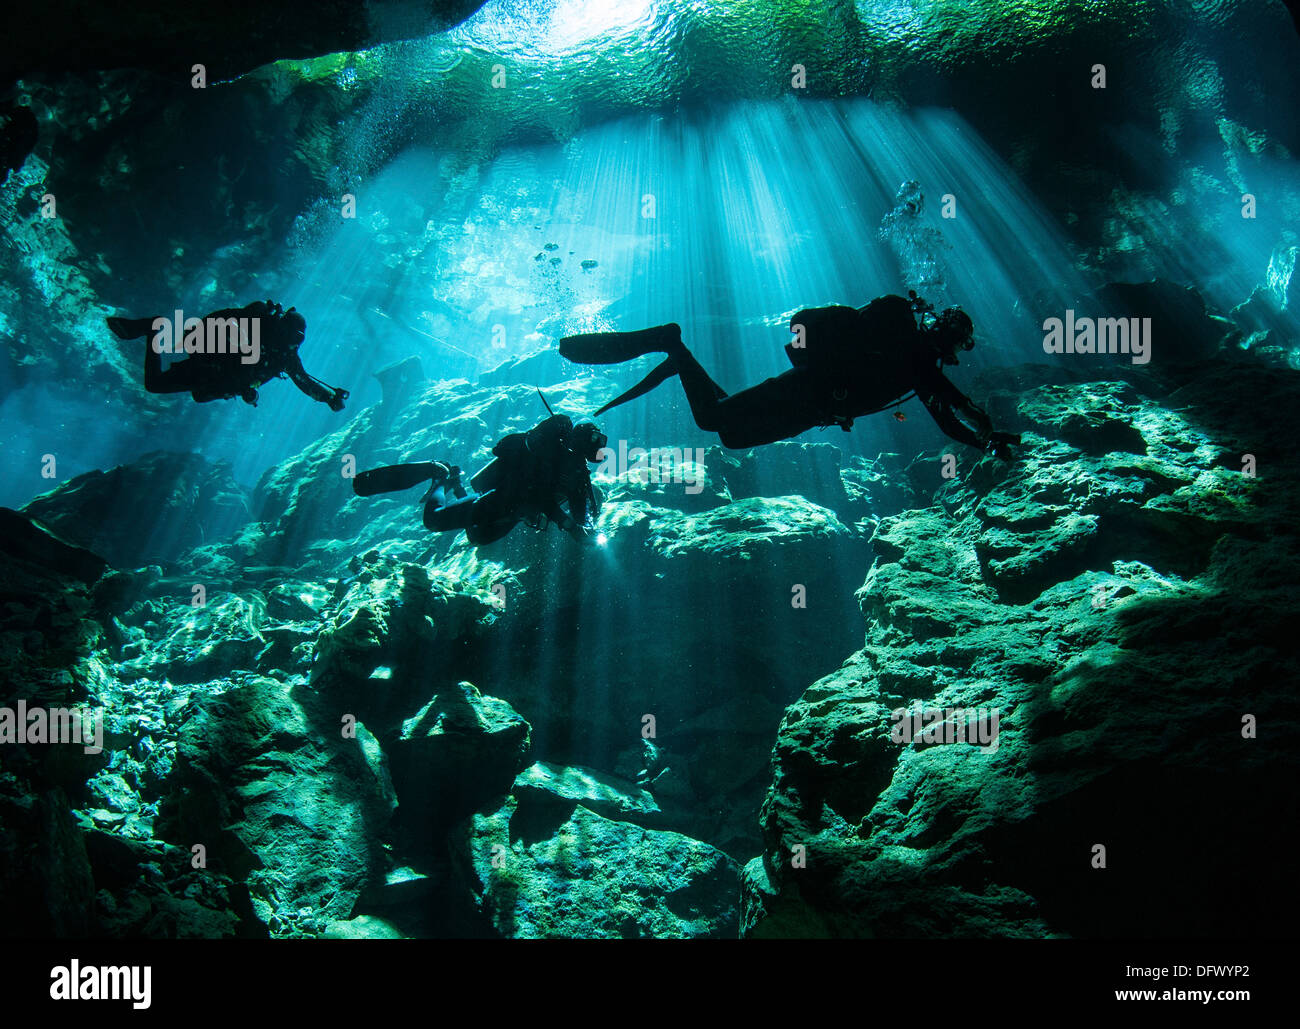 Diver enters the cavern system at Chac Mool cenote in the Riviera Maya area of Mexico's Yucatan Peninsula. - Stock Image